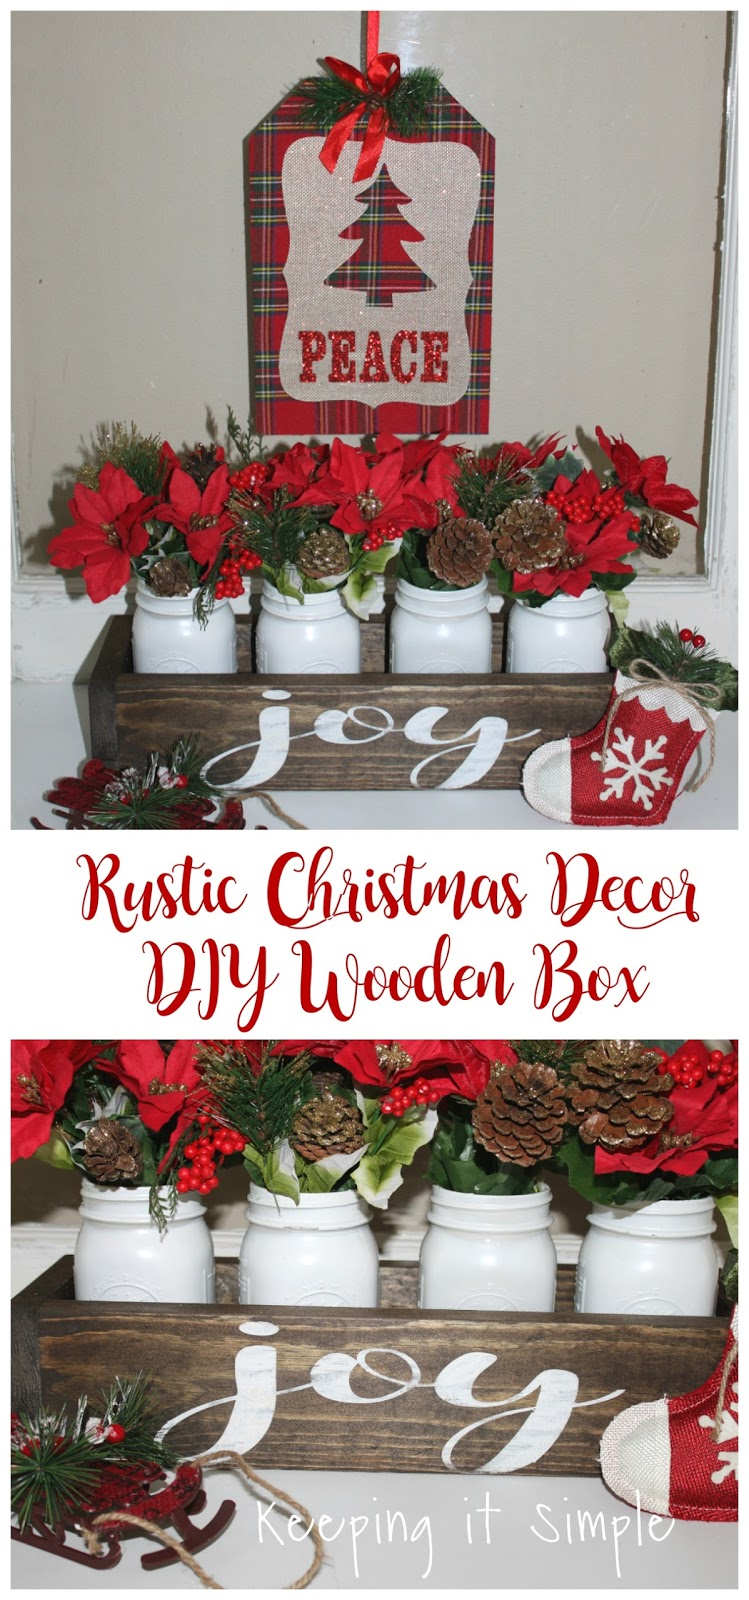 christmas decorations craft ideas rustic decor diy wooden box keeping it simple 3612